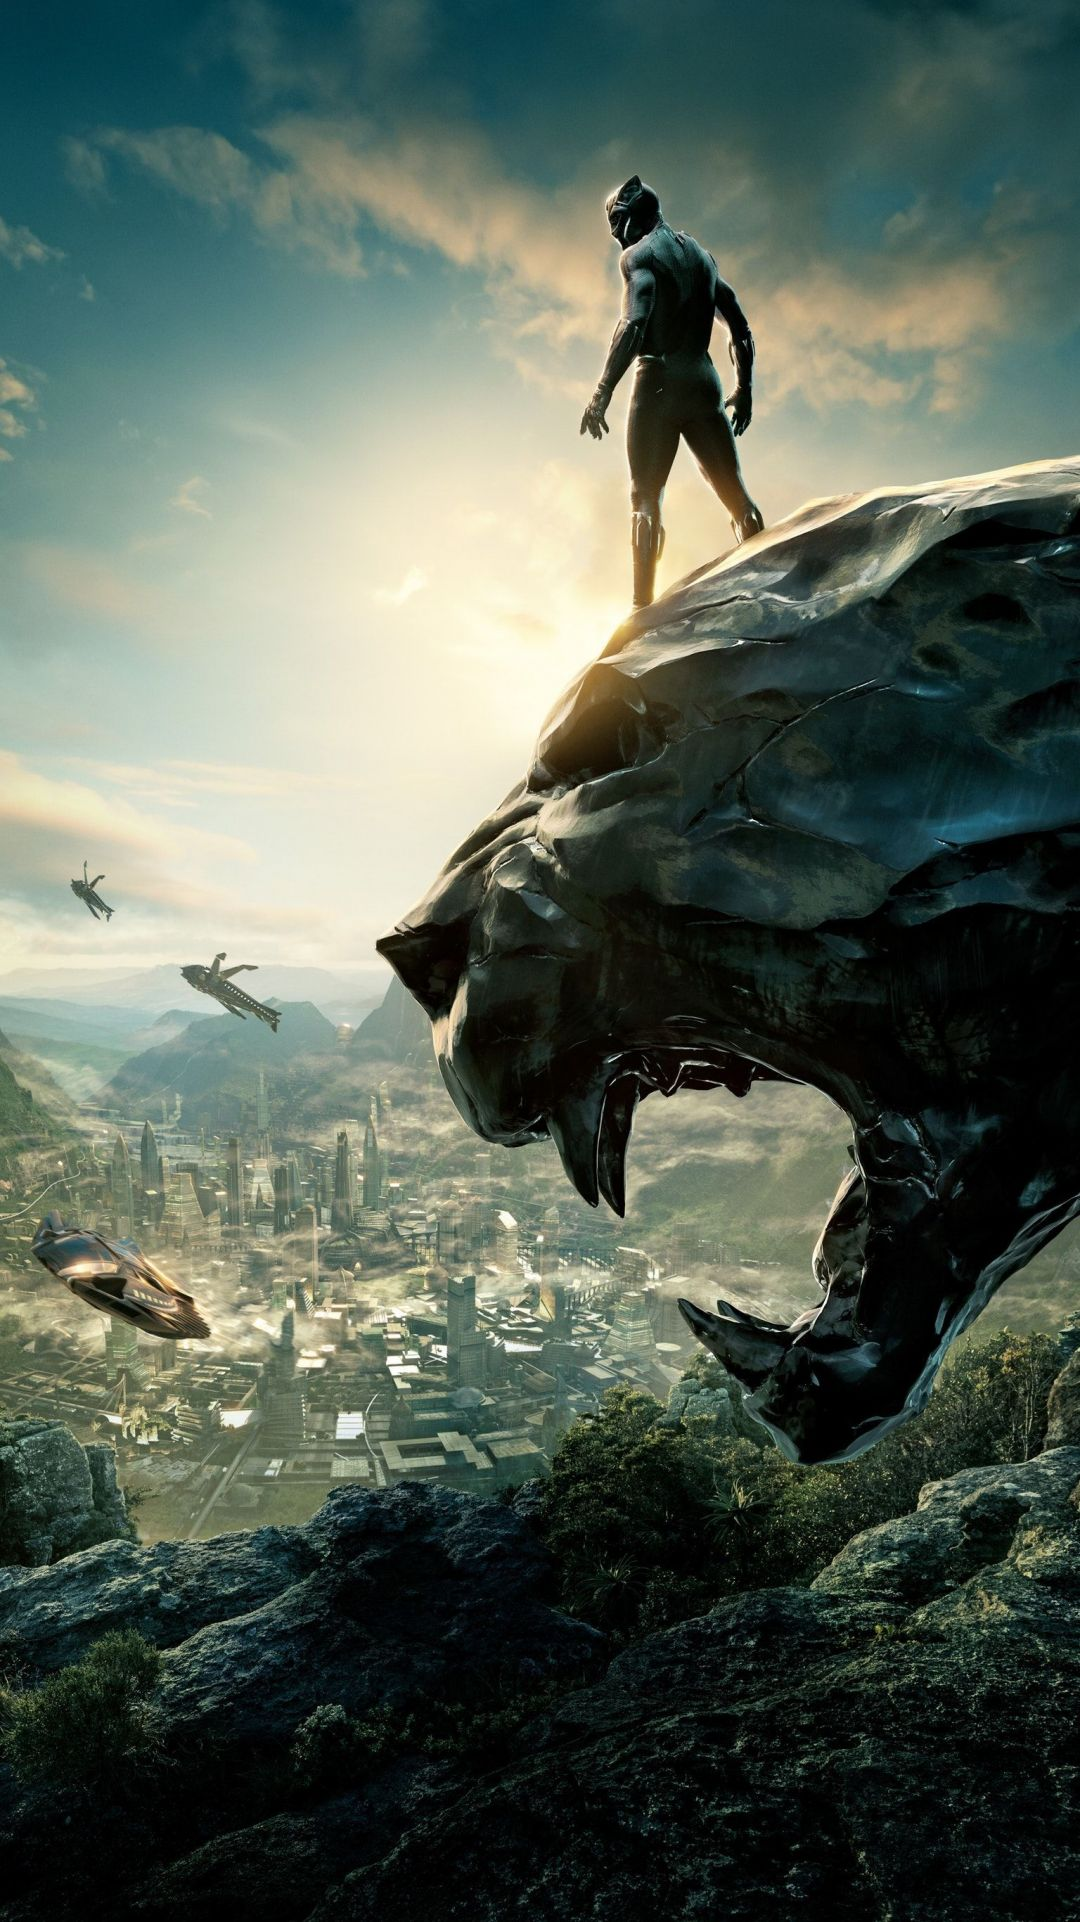 55 Black Panther Movie Android Iphone Desktop Hd Backgrounds Wallpapers 1080p 4k 1536x2733 2020